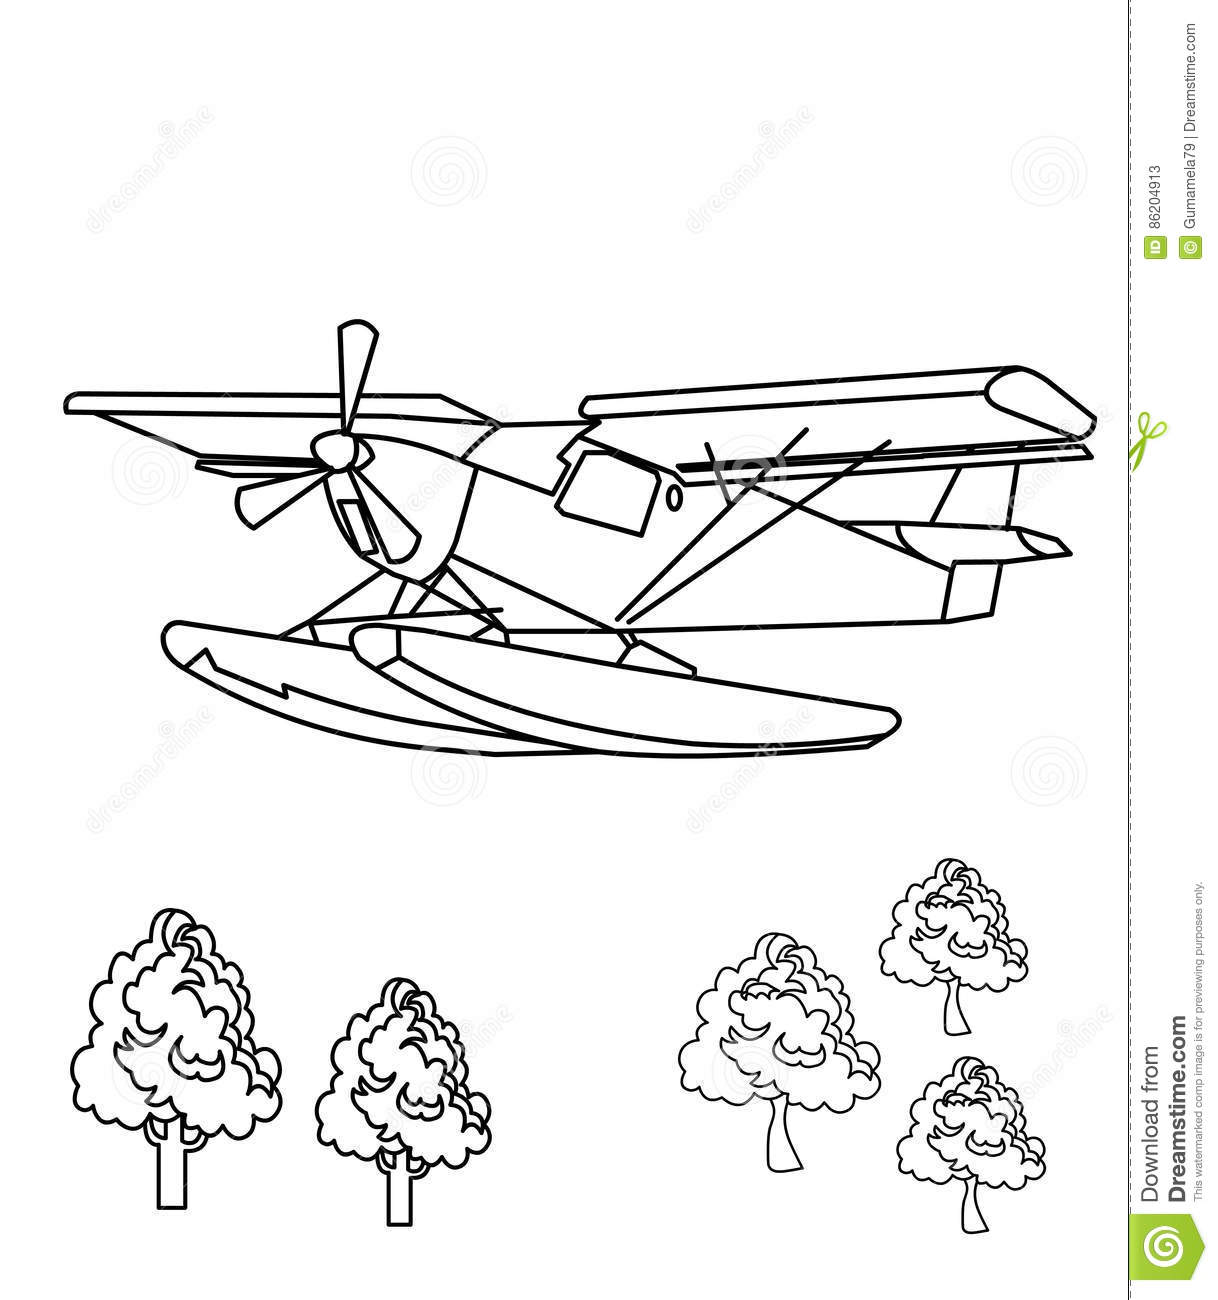 Propeller Plane Coloring Page Stock Illustration - Illustration of ...